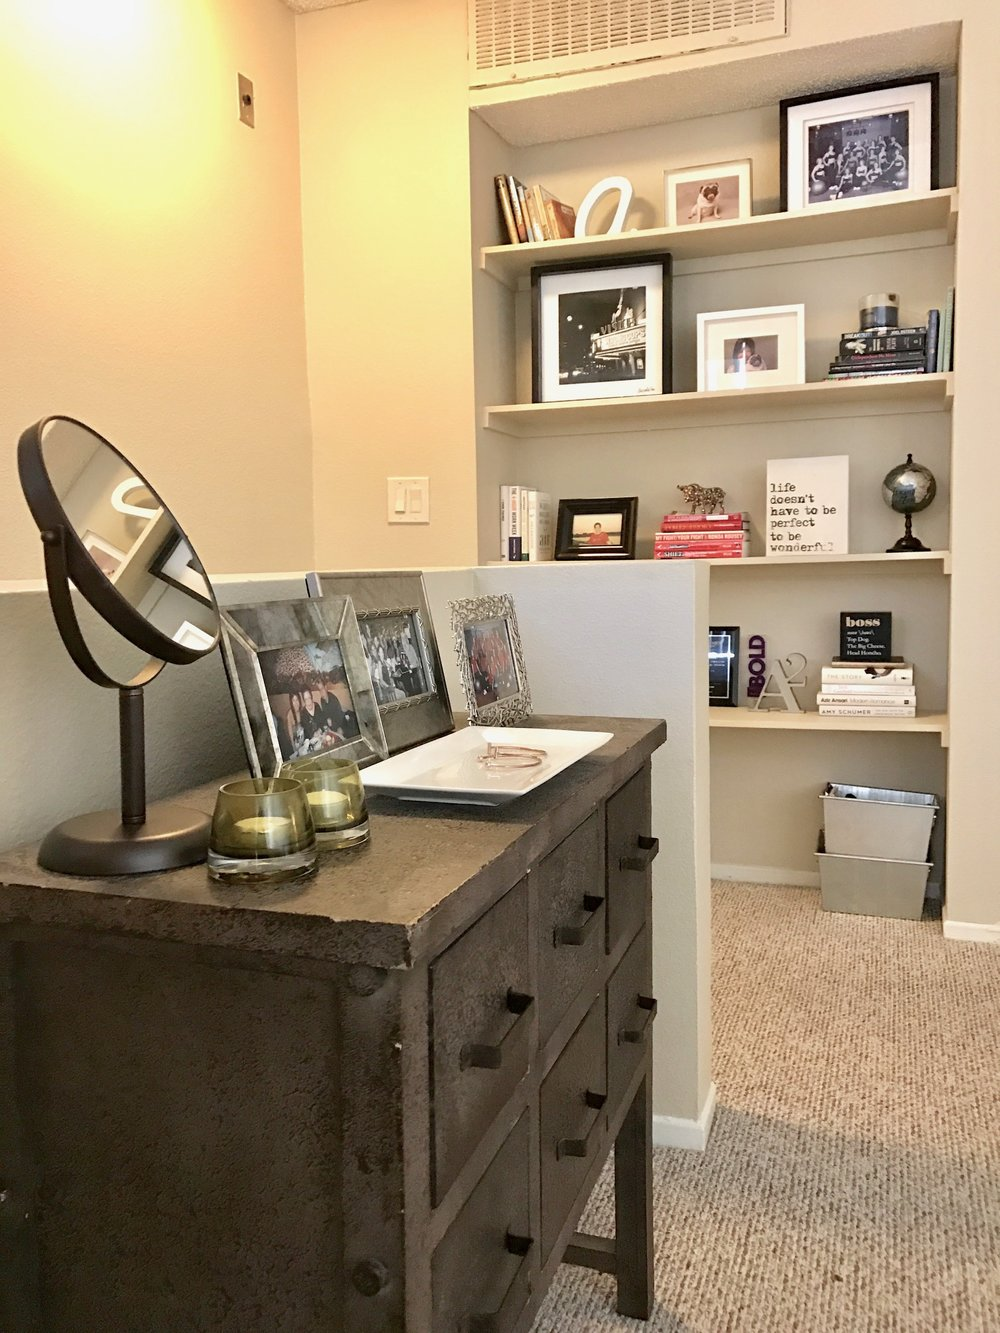 Styled mini dresser and book shelves